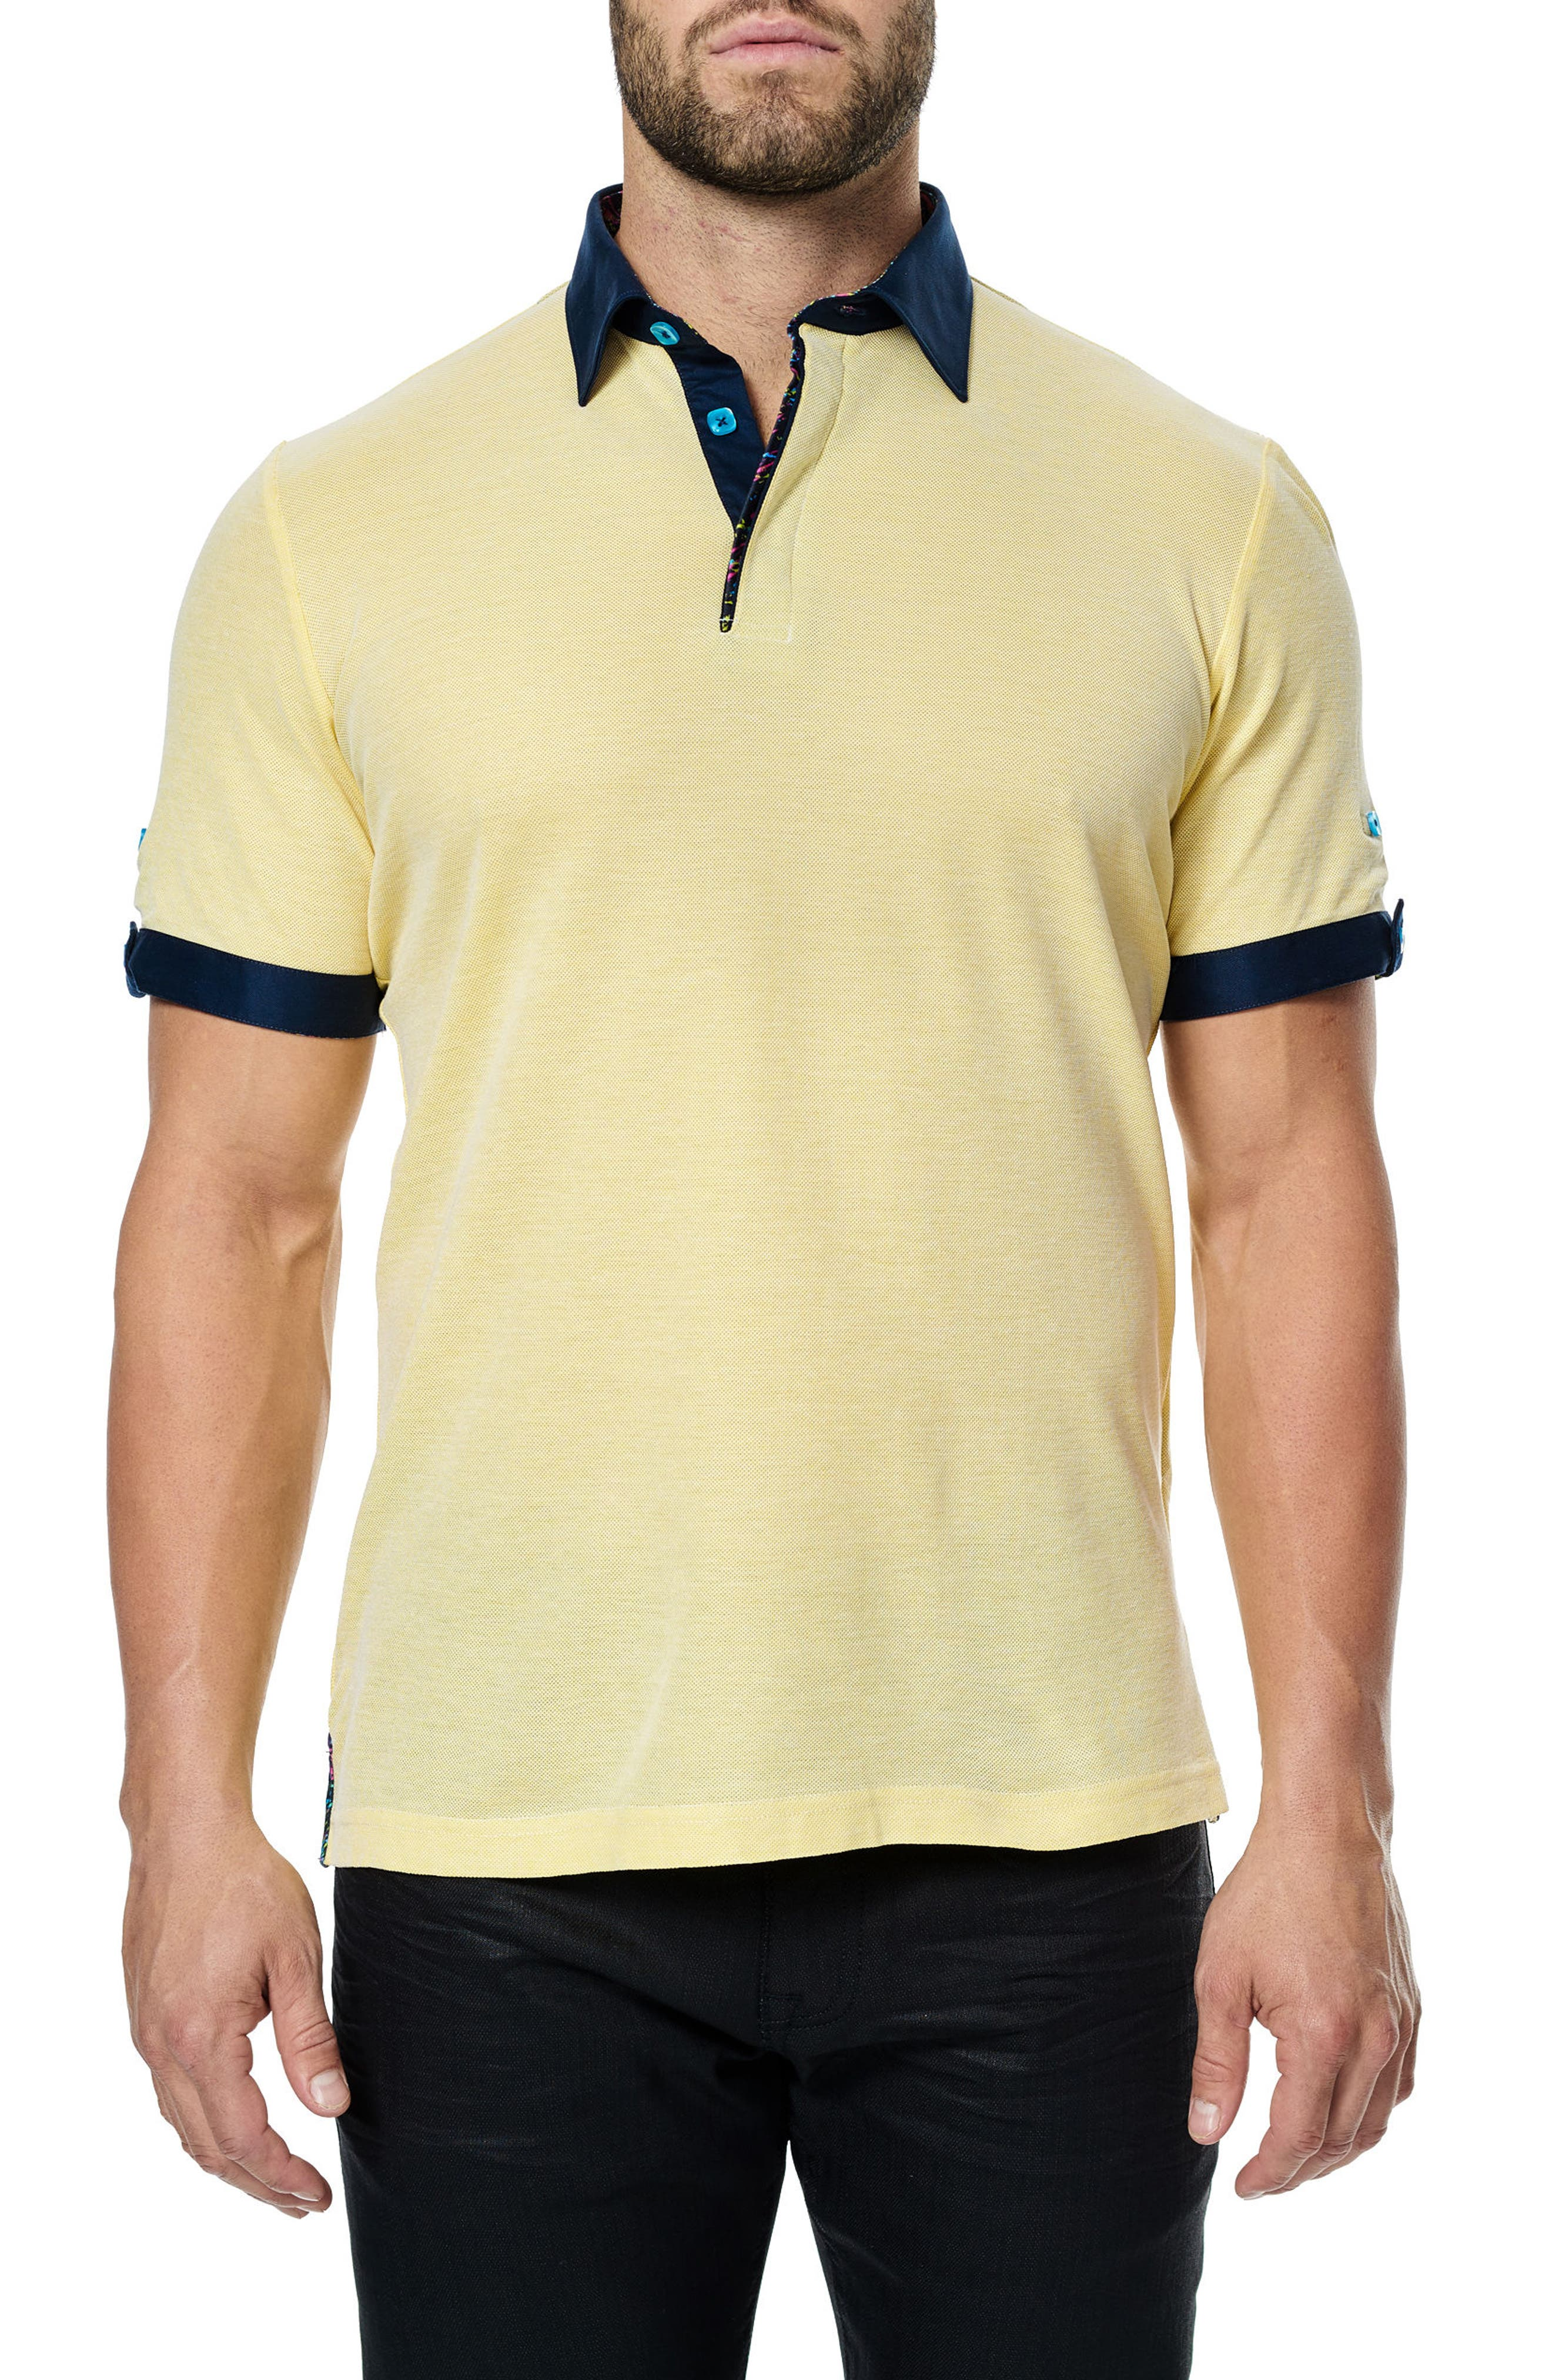 Alternate Image 1 Selected - Maceoo Woven Trim Polo